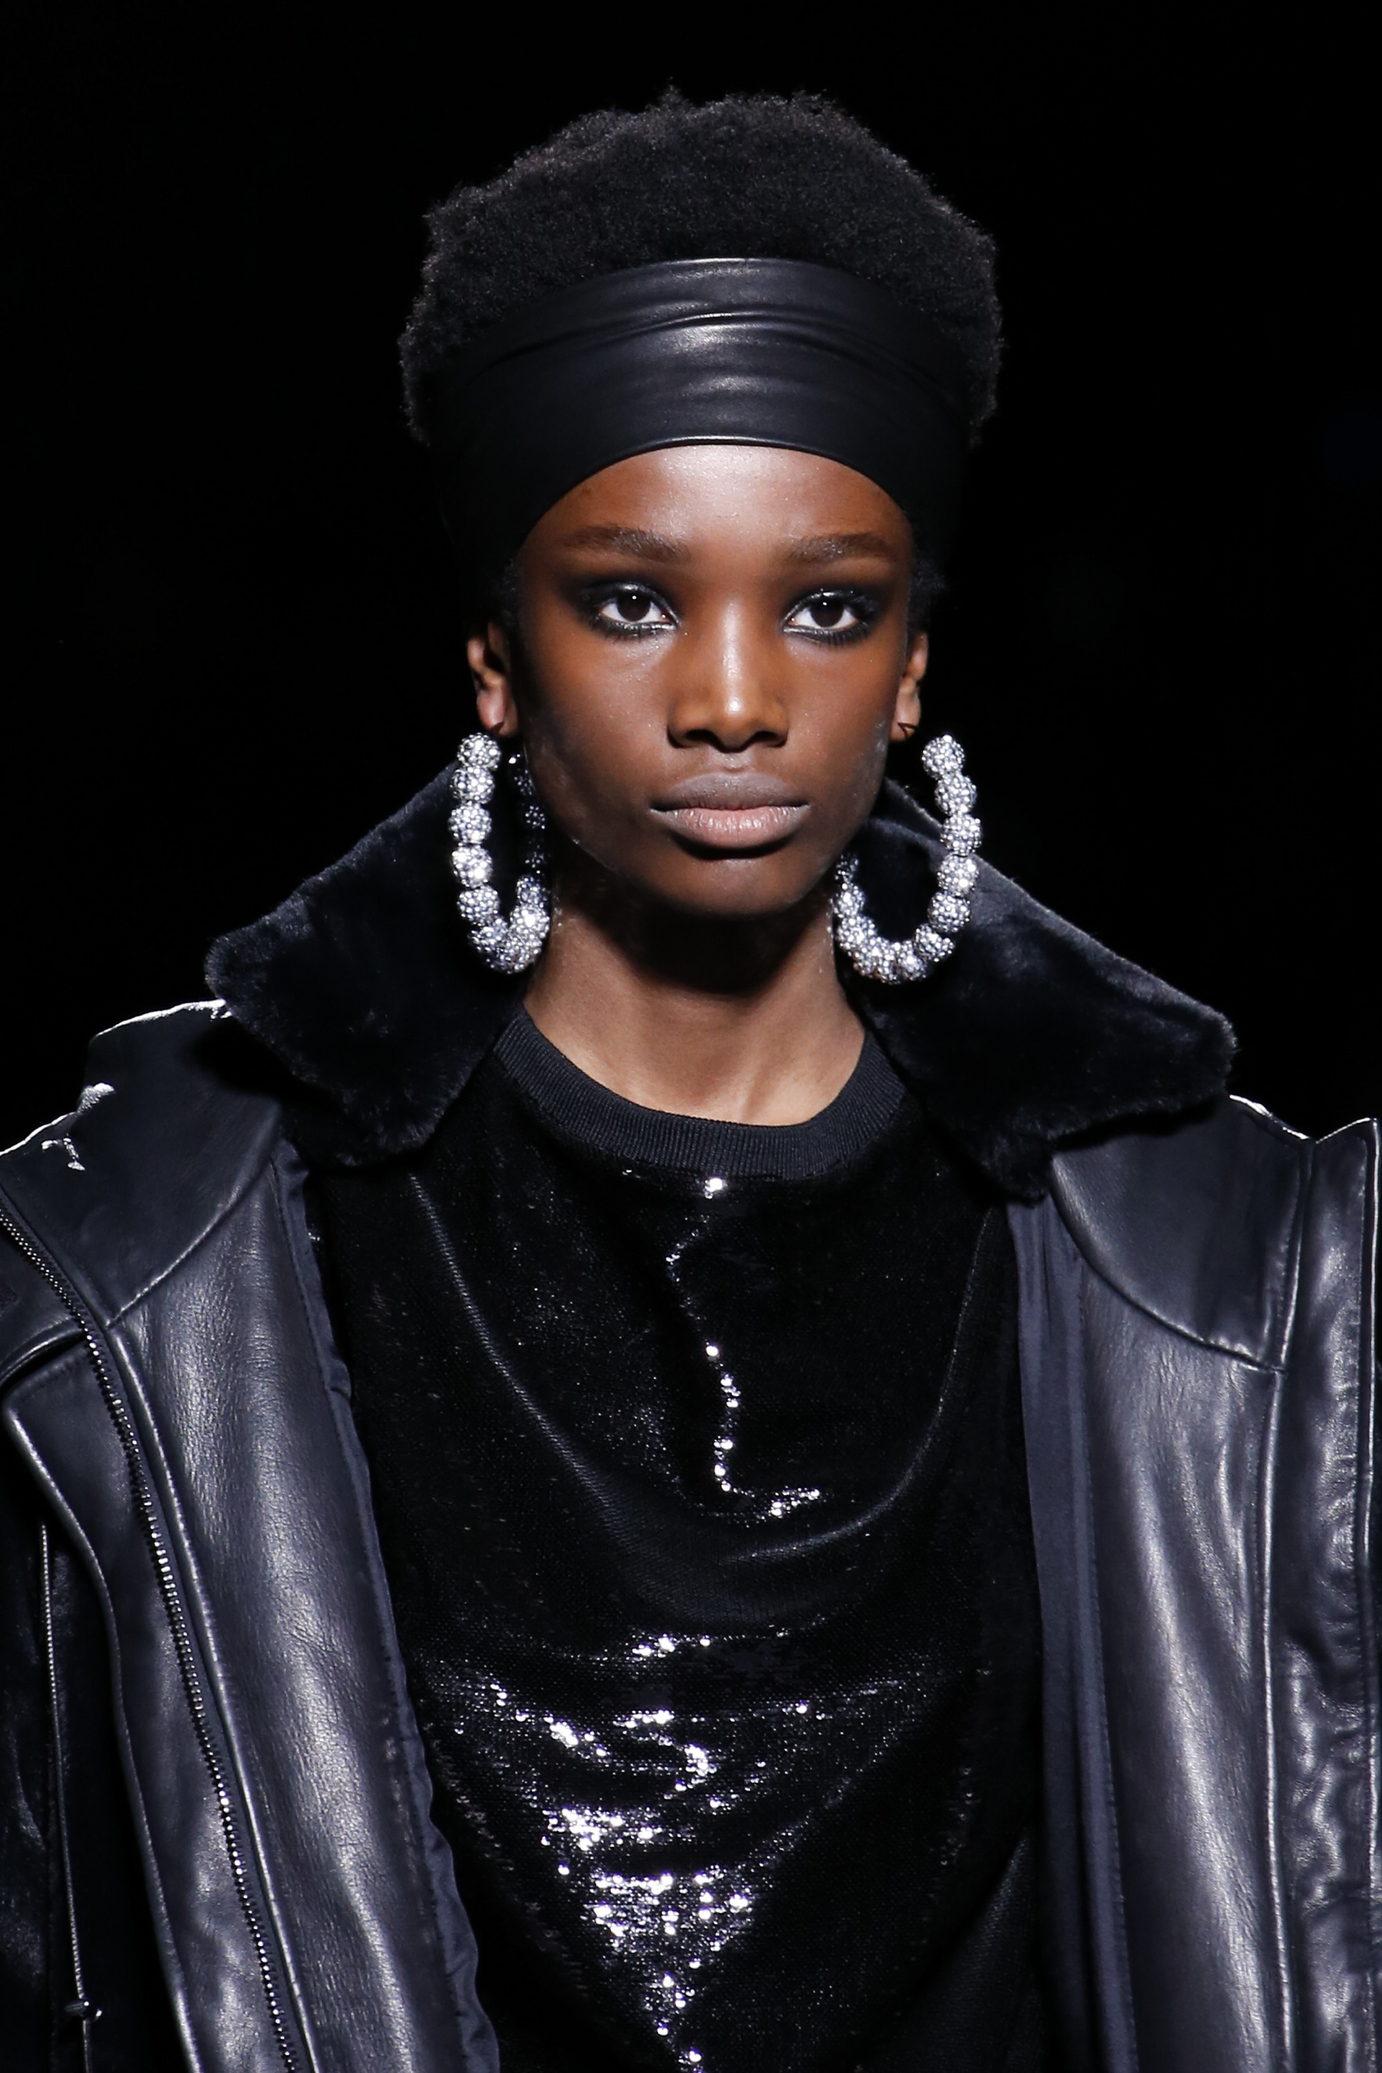 Tom Ford hair accessories 2019